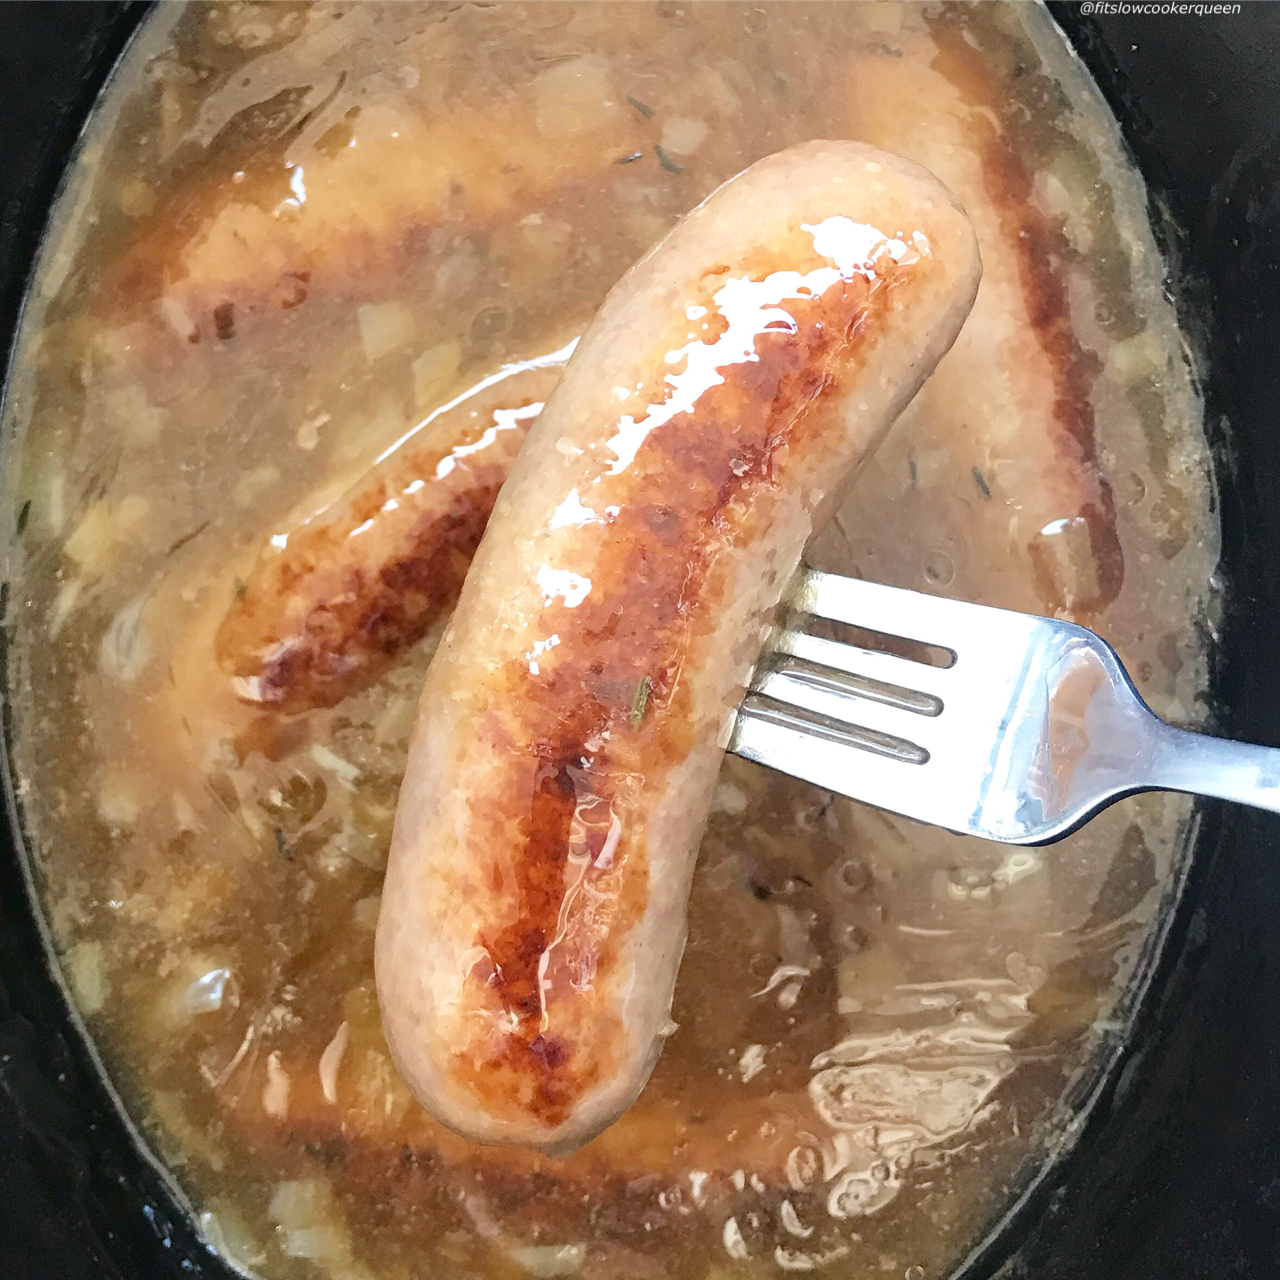 Bangers and mash also known as sausages and mashed potatoes is traditionally a hearty and comforting dish. This cleaned up version uses a simple, homemade gravy and mashed cauliflower to make it lower carb, paleo, and whole30 compliant.